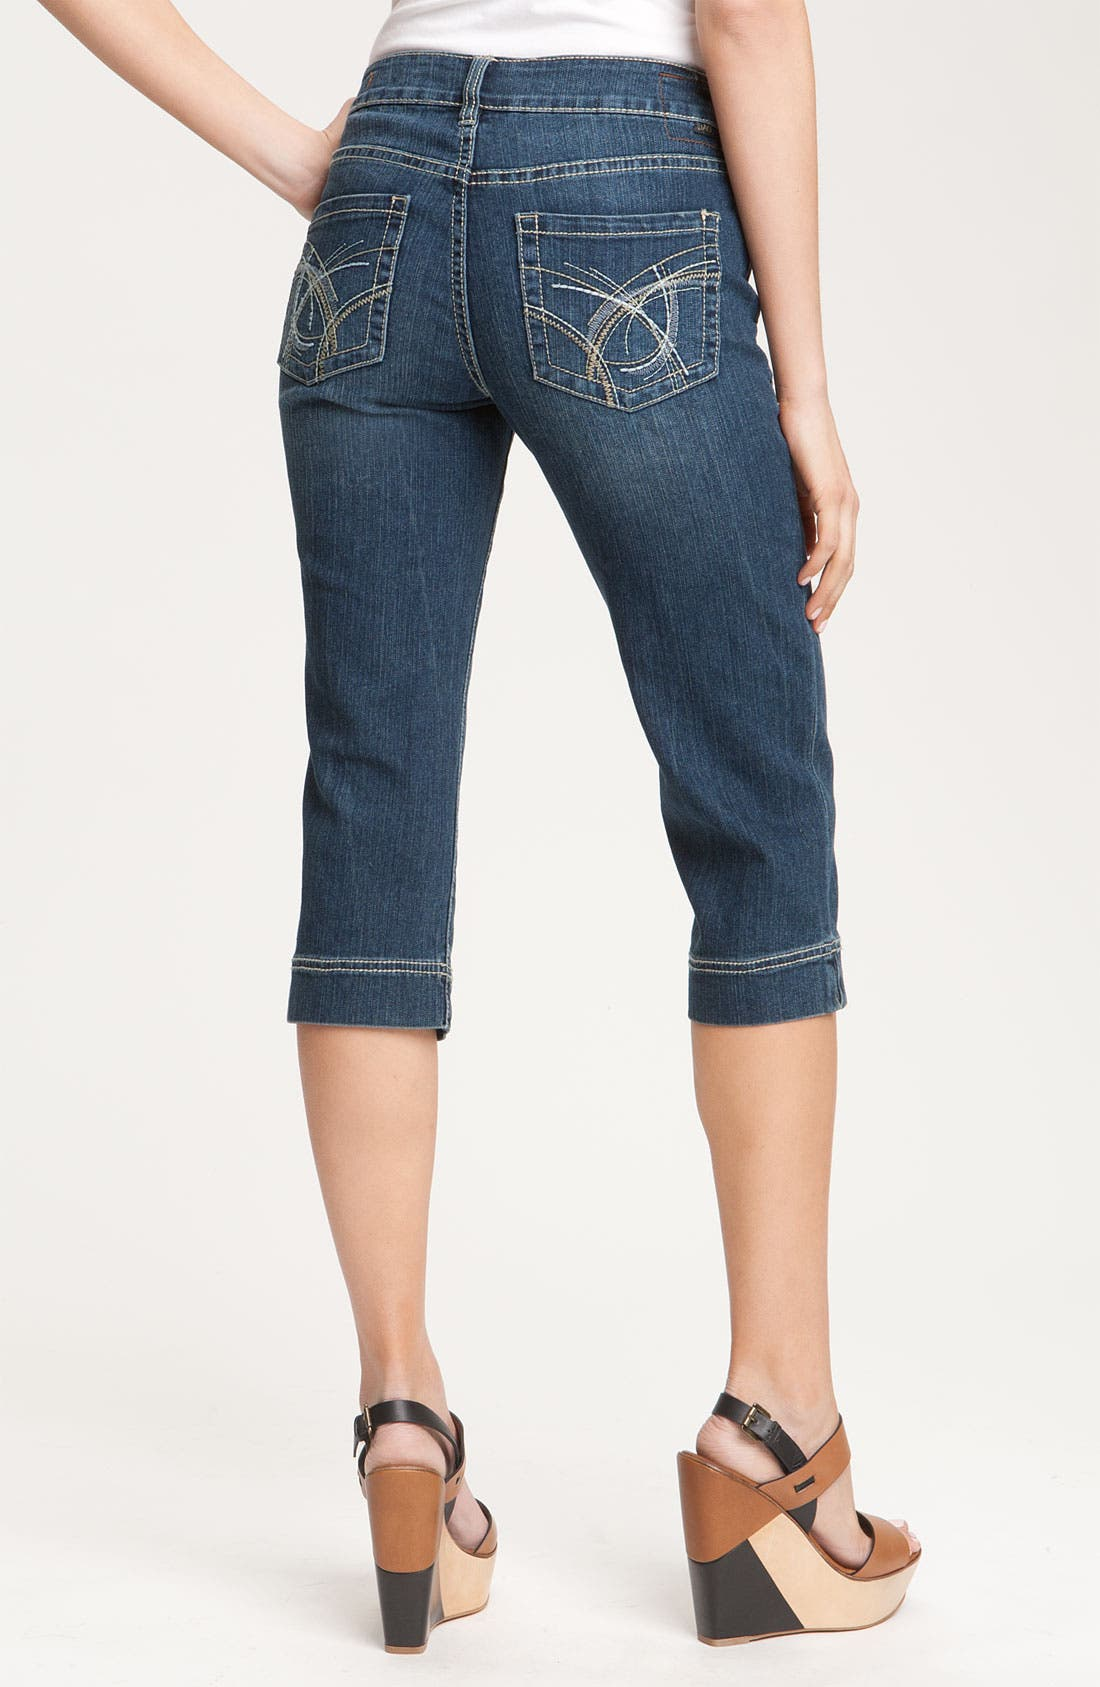 Alternate Image 1 Selected - Jag Jeans 'Selma' Crop Jeans (Petite)